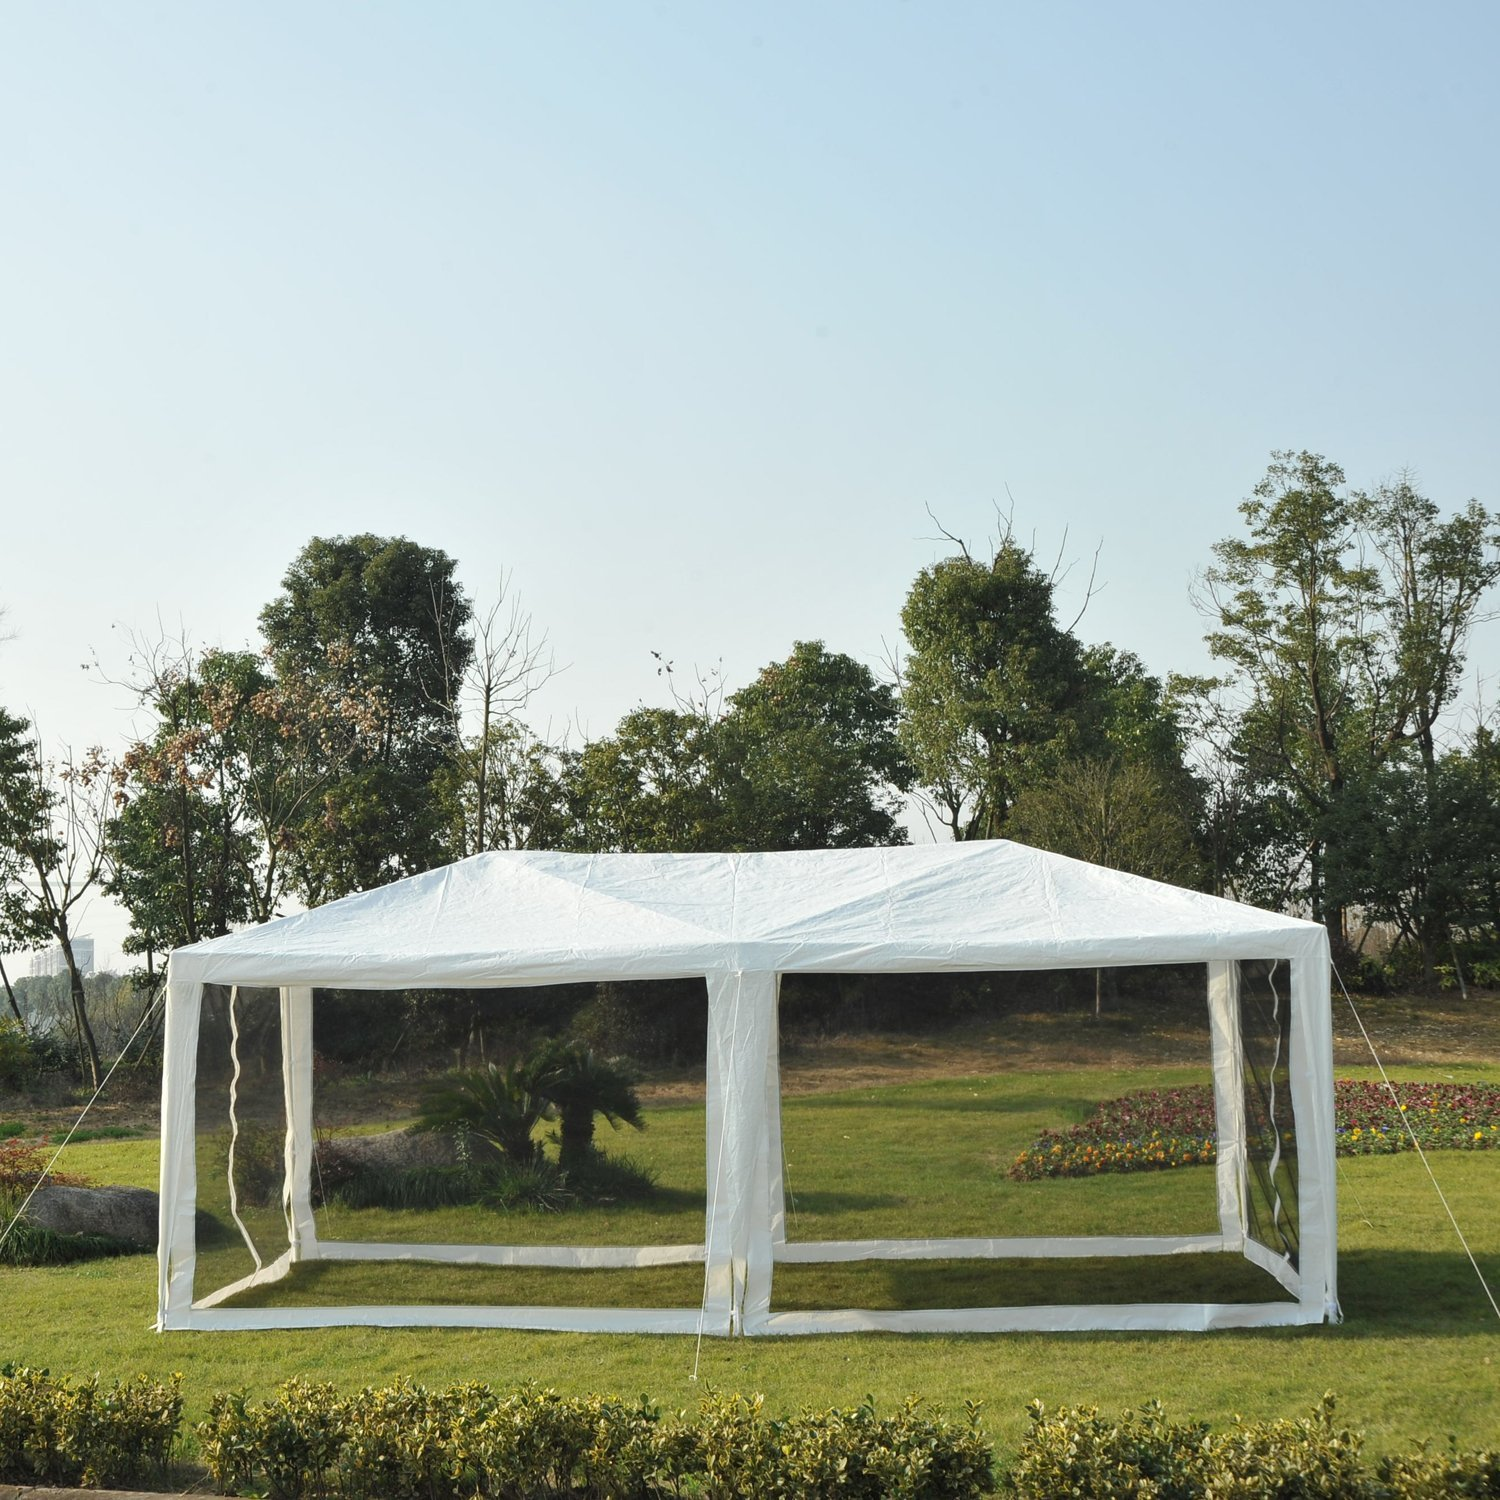 10-039-x-20-039-Gazebo-Canopy-Cover-Tent-Patio-Party-w-Removable-Mesh-Side-Walls thumbnail 13